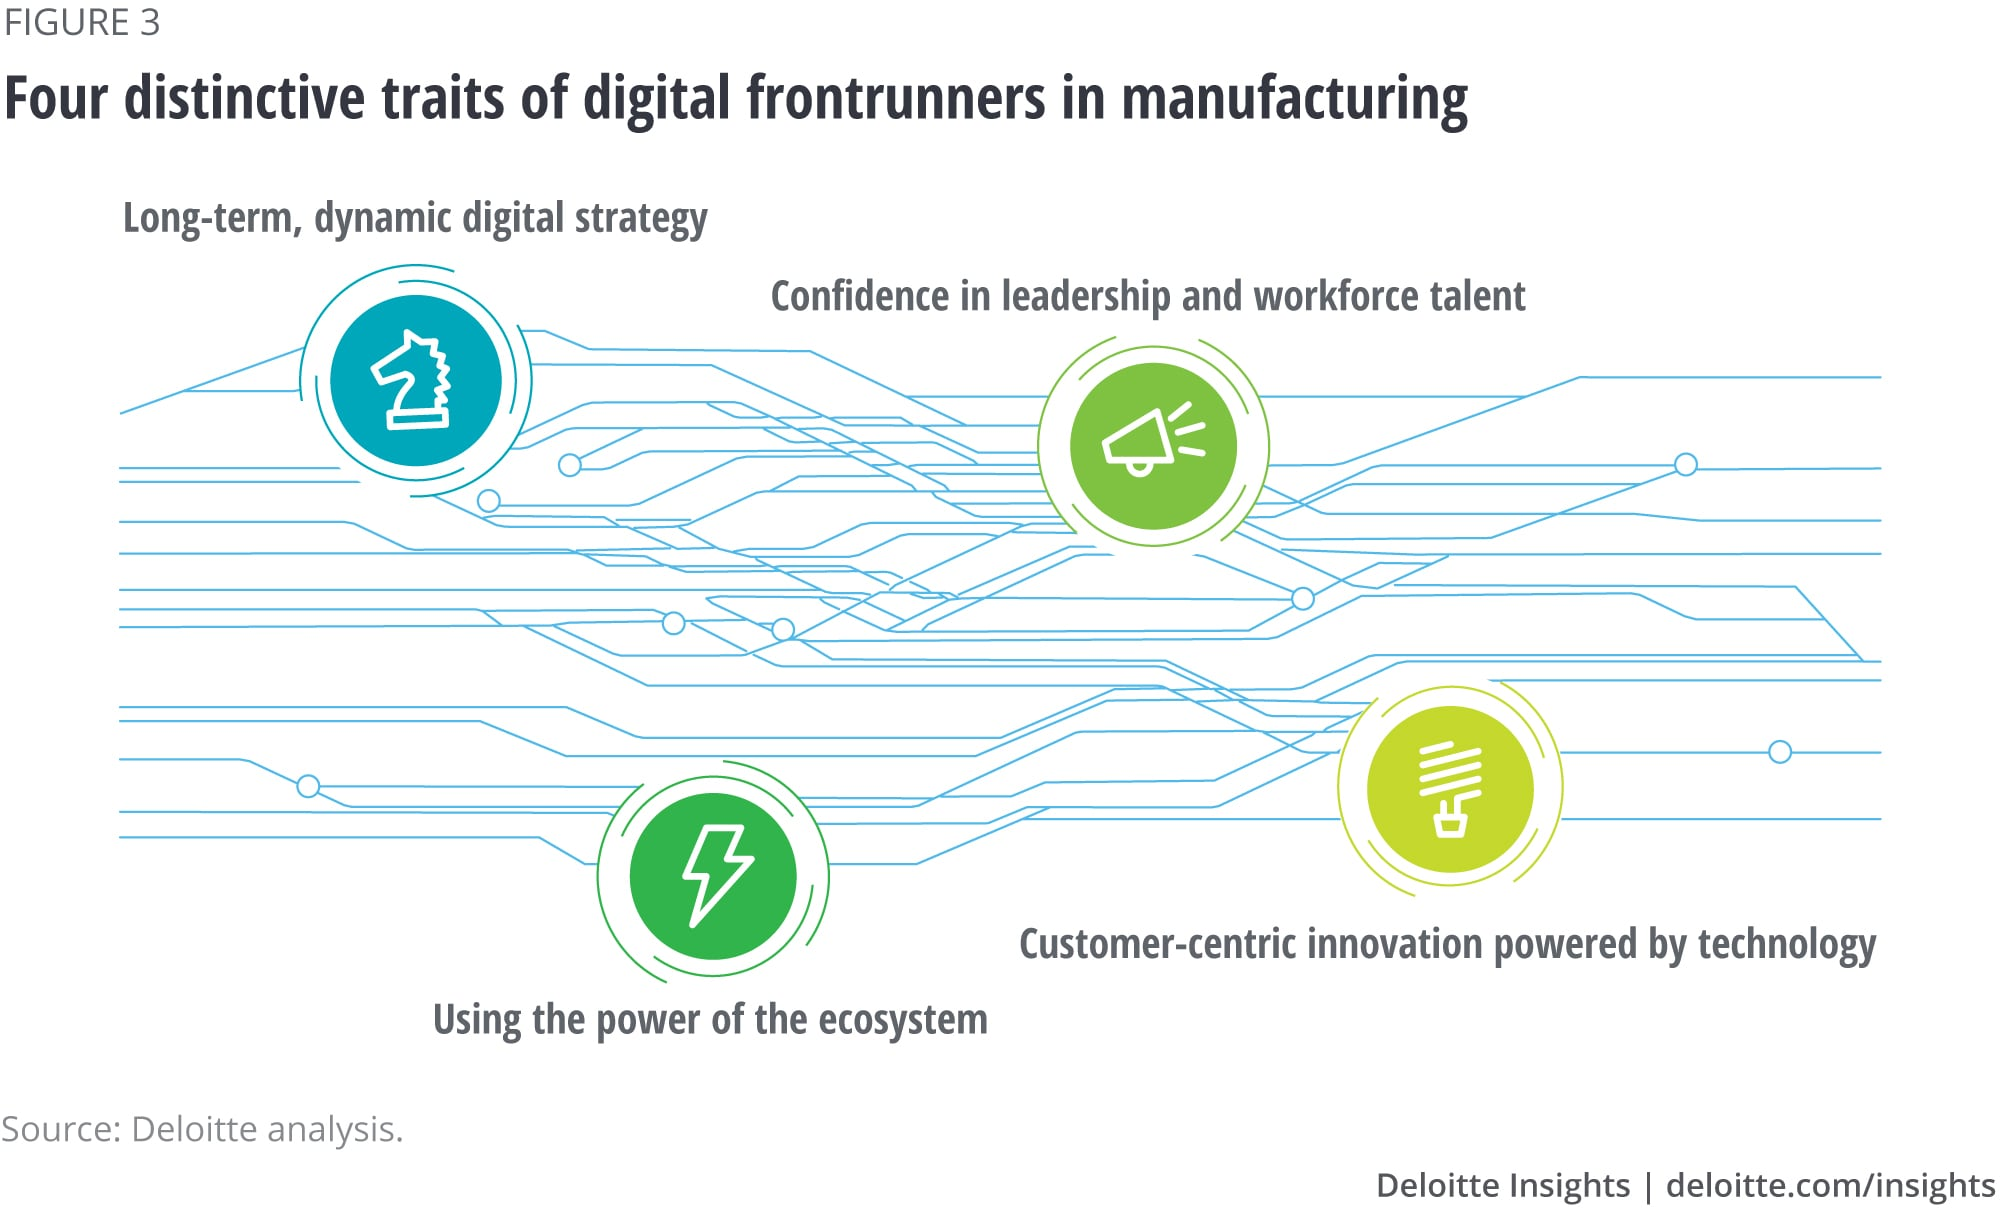 Four distinctive traits of digital frontrunners in manufacturing